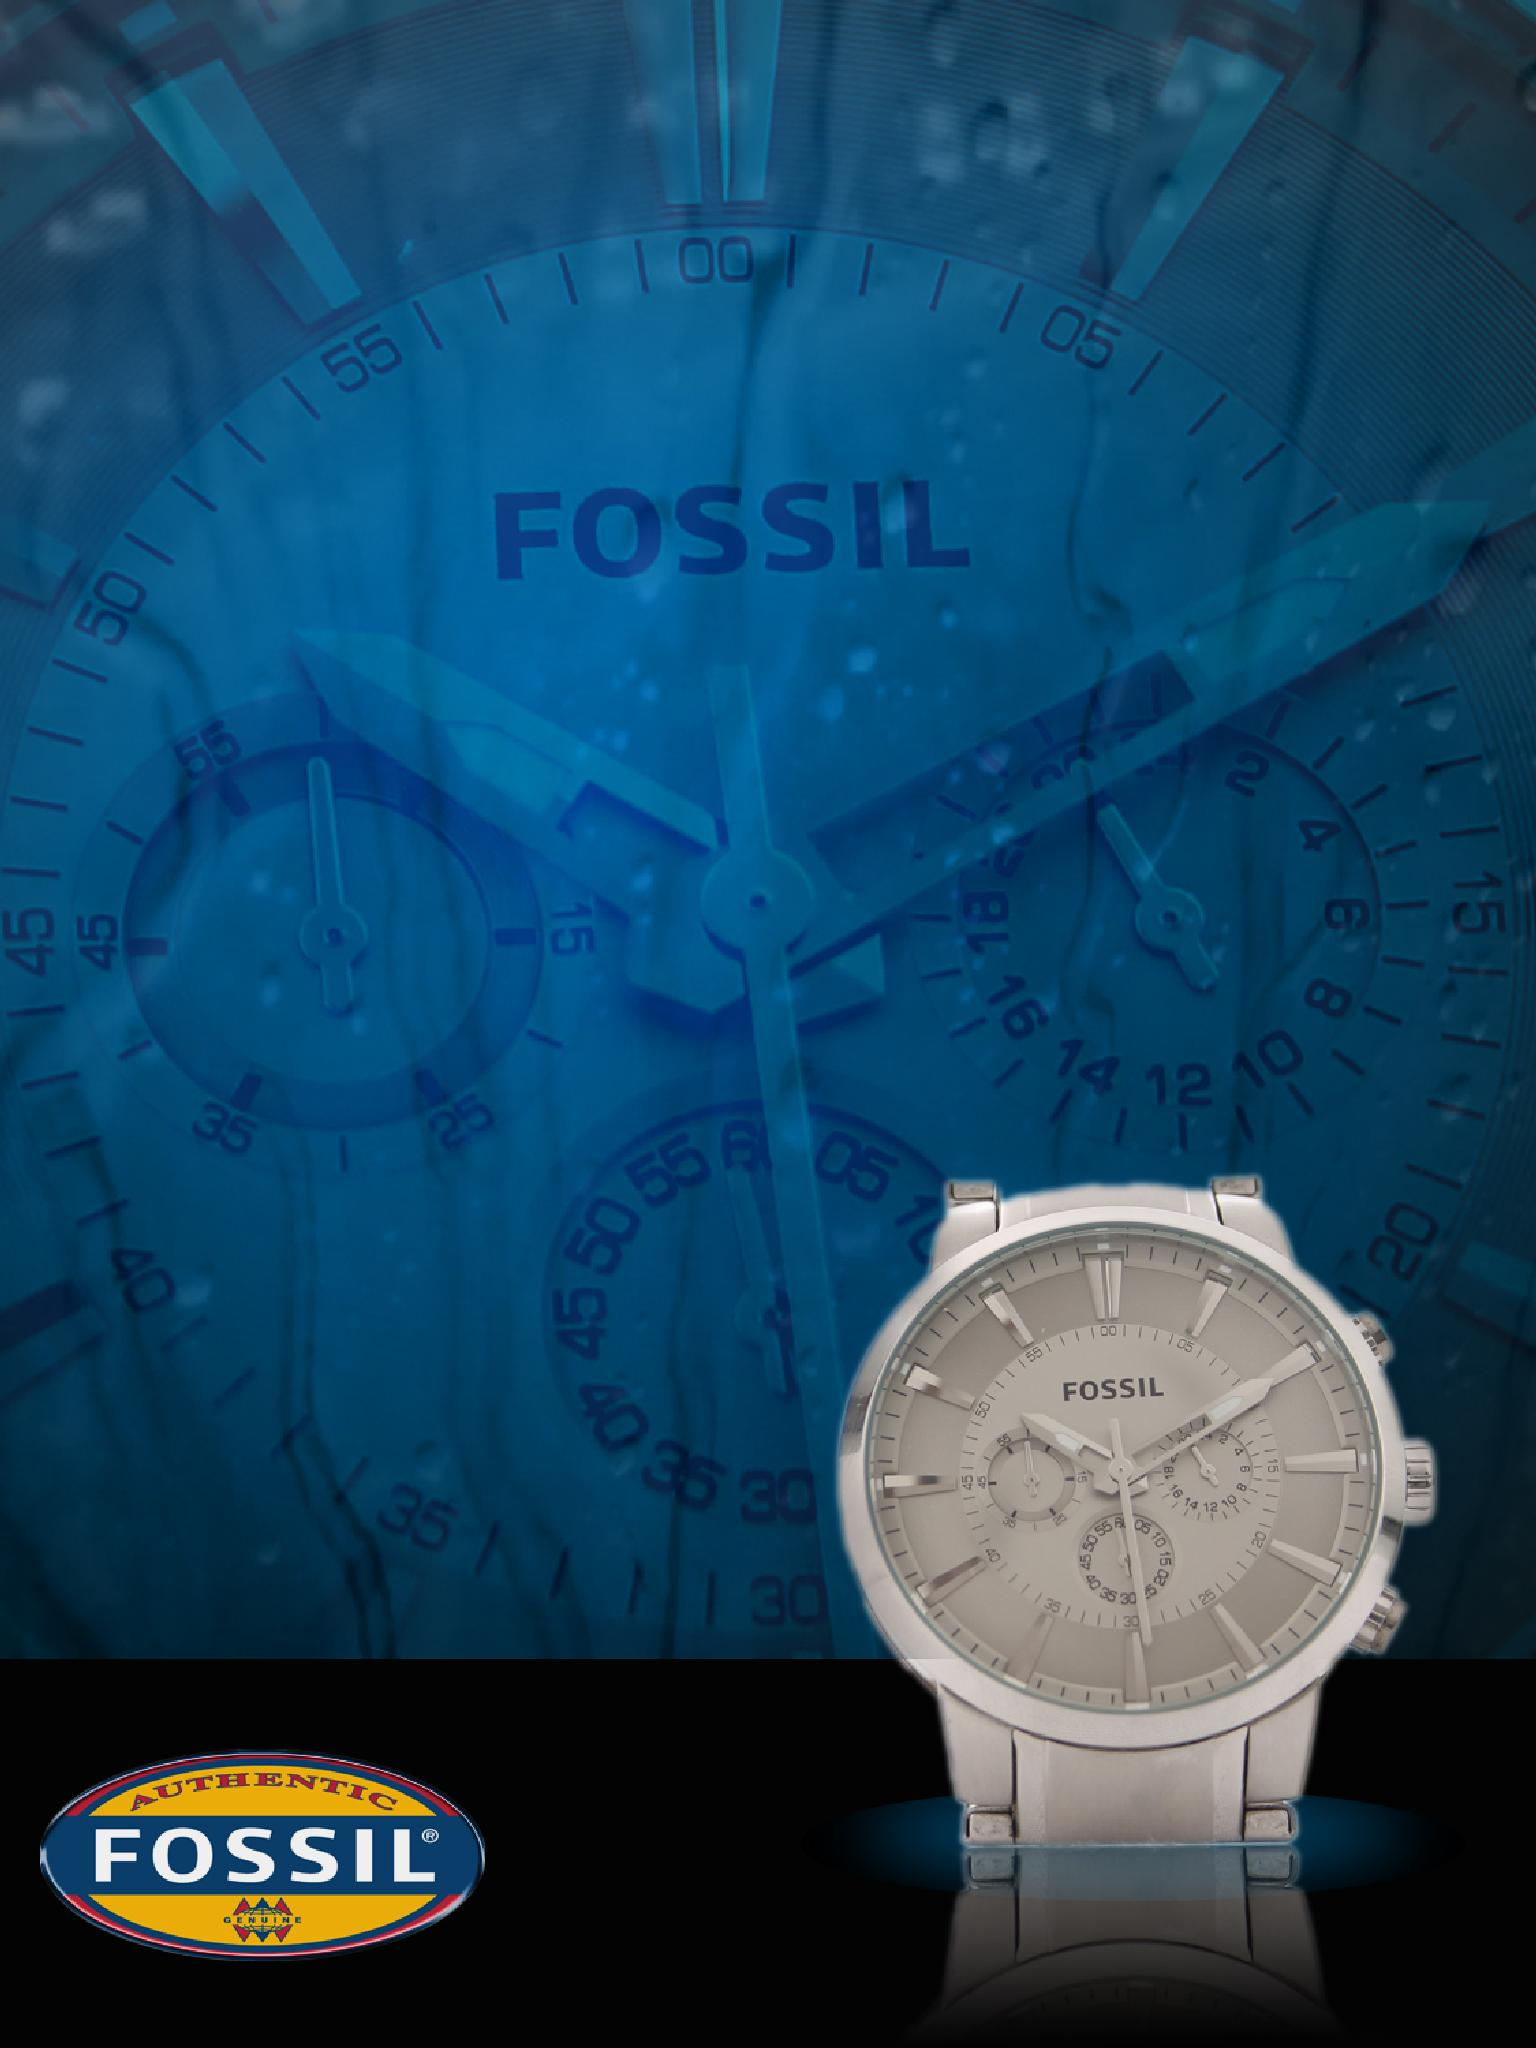 Fossil Watch by dhritimanlahiri